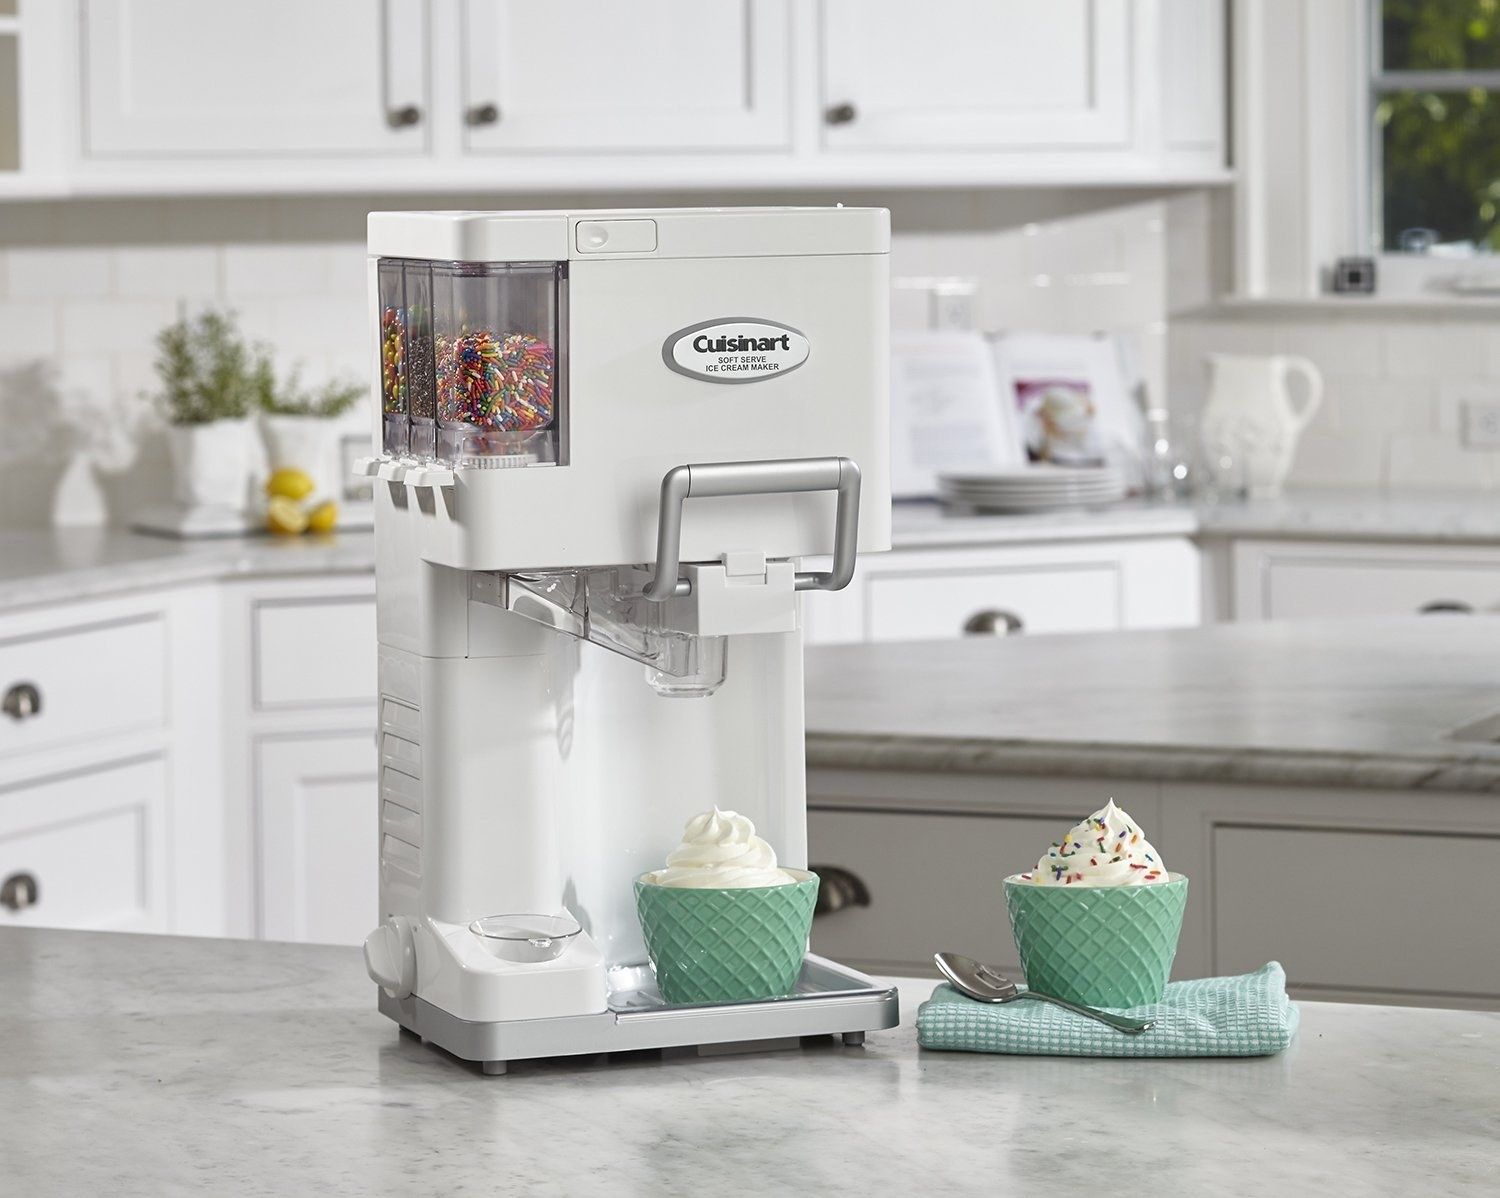 "Promising review: ""This machine is awesome! My girlfriend and I are both 68 and we make ice cream with this usually twice a week! It works perfectly every time! It also tastes way better than any store bought ice cream. It's easy to clean and maintain. I would recommend this to anyone who likes ice cream!"" —SteveGet it from Amazon for $69.86 or Walmart for $69.99."